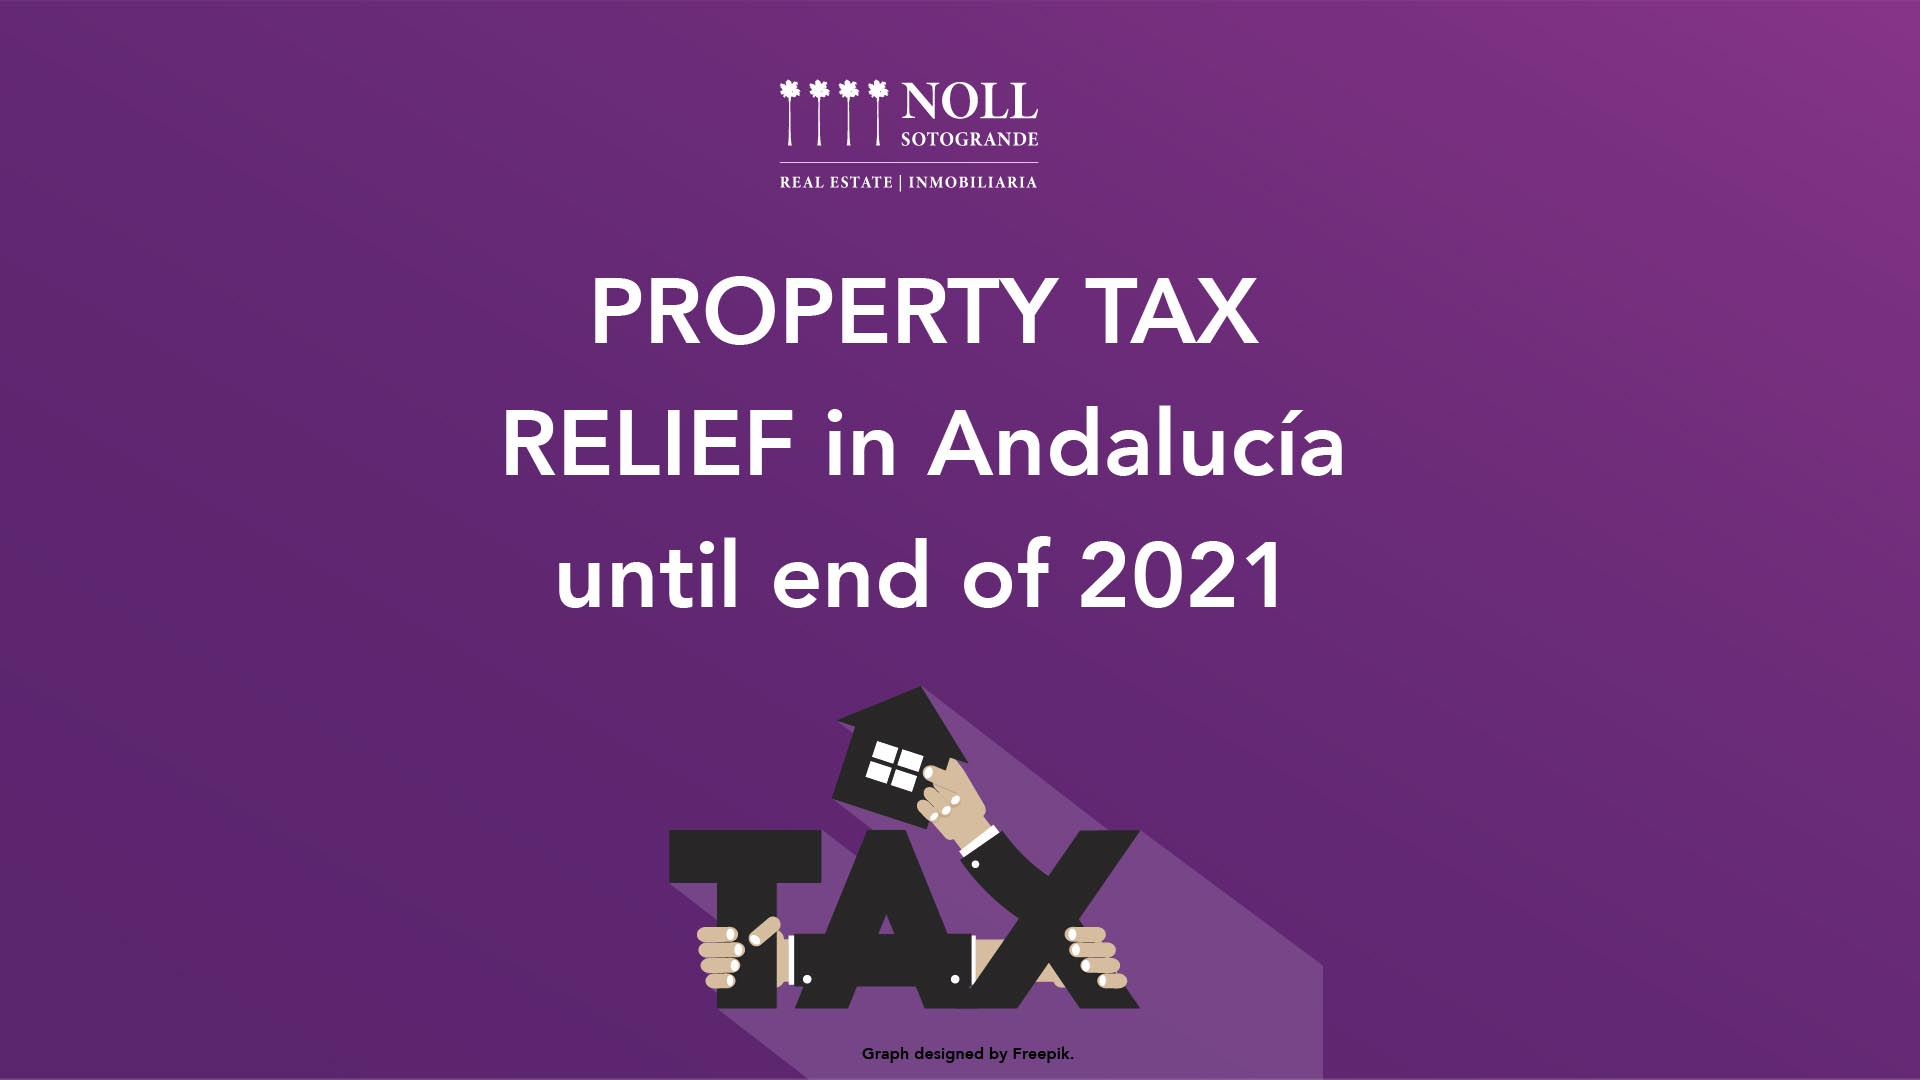 property-tax-relief-andalucia-december-2021-graph-designed by Freepik